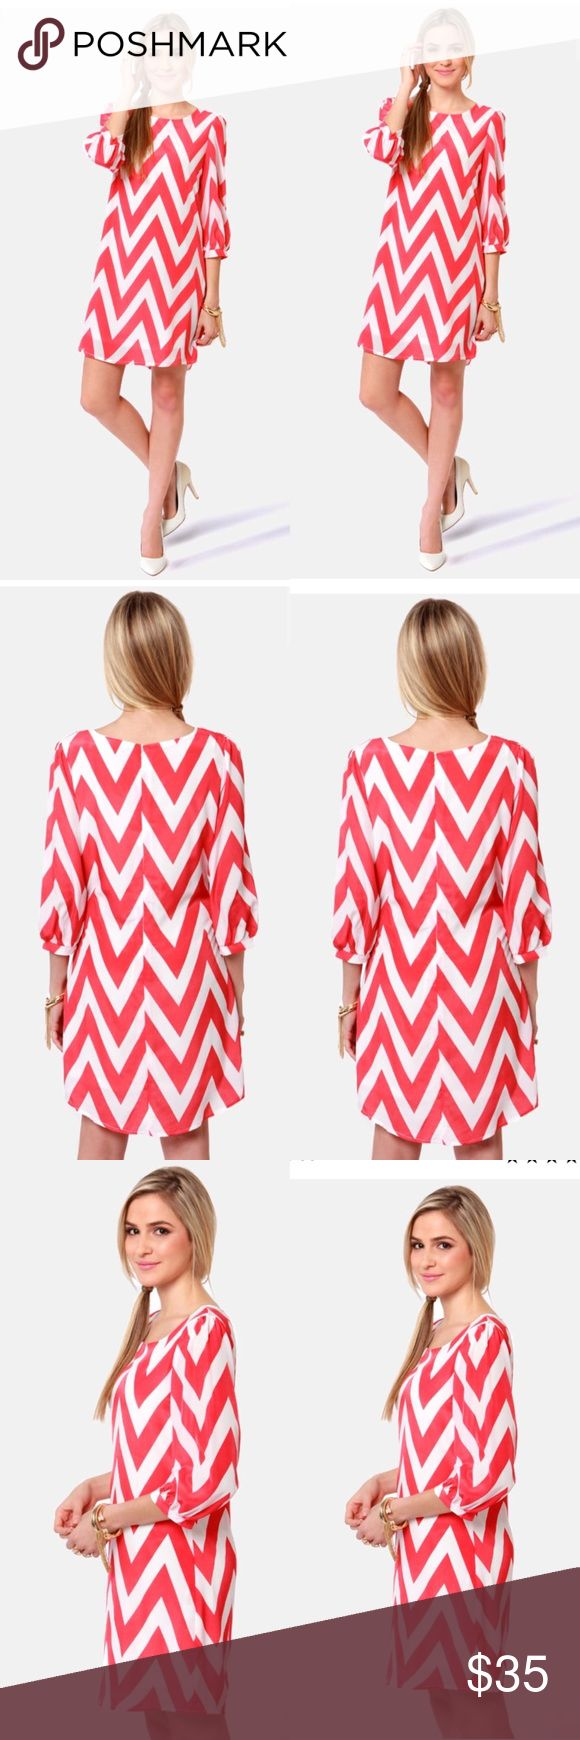 •{ l u l u s }• Looks like your luggage just got lighter since all you need is the Pack Your Zigzags Coral Pink Chevron Print Dress! This dress does it all, from casual to cocktail hour, with alternating zigzag stripes in ivory and coral pink. Shift bodice has a bateau neckline and three-quarter sleeves that gather at the cuffs. Bodice is lined. Hidden back zipper. Model is wearing a size small. 100% Polyester. Hand Wash Cold. Imported. Lulu's Dresses Long Sleeve